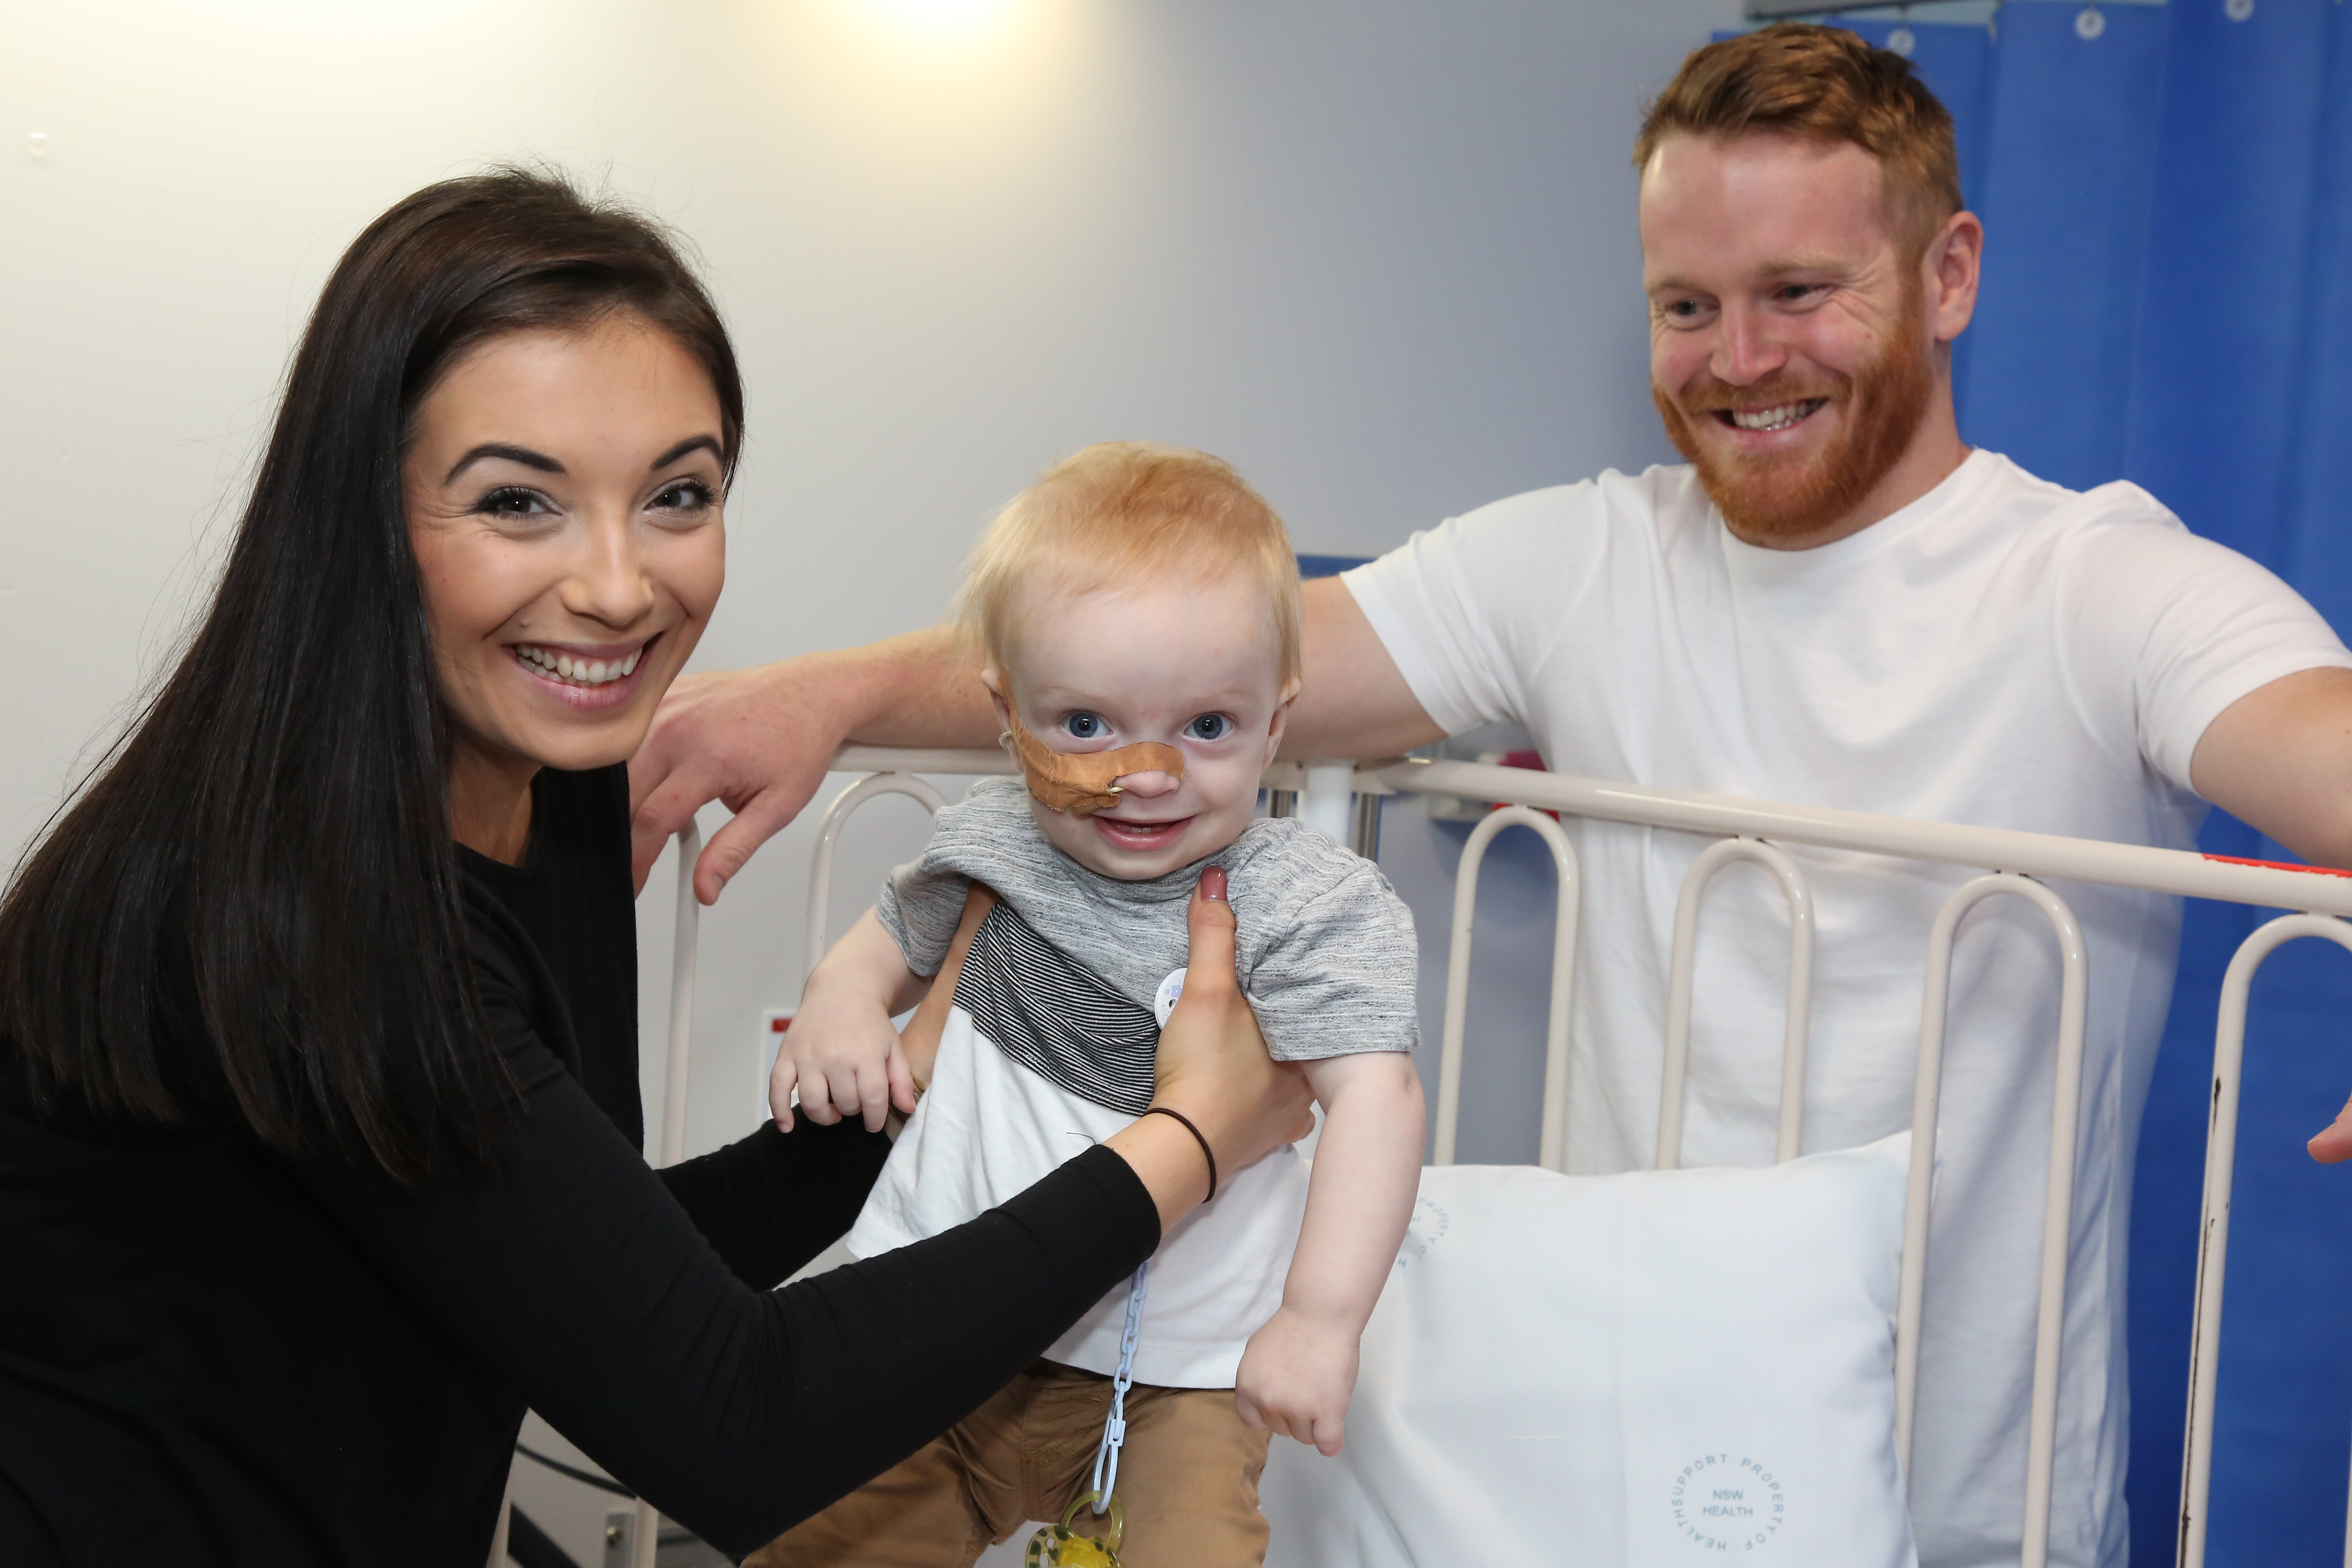 Parents with child in hospital smiling